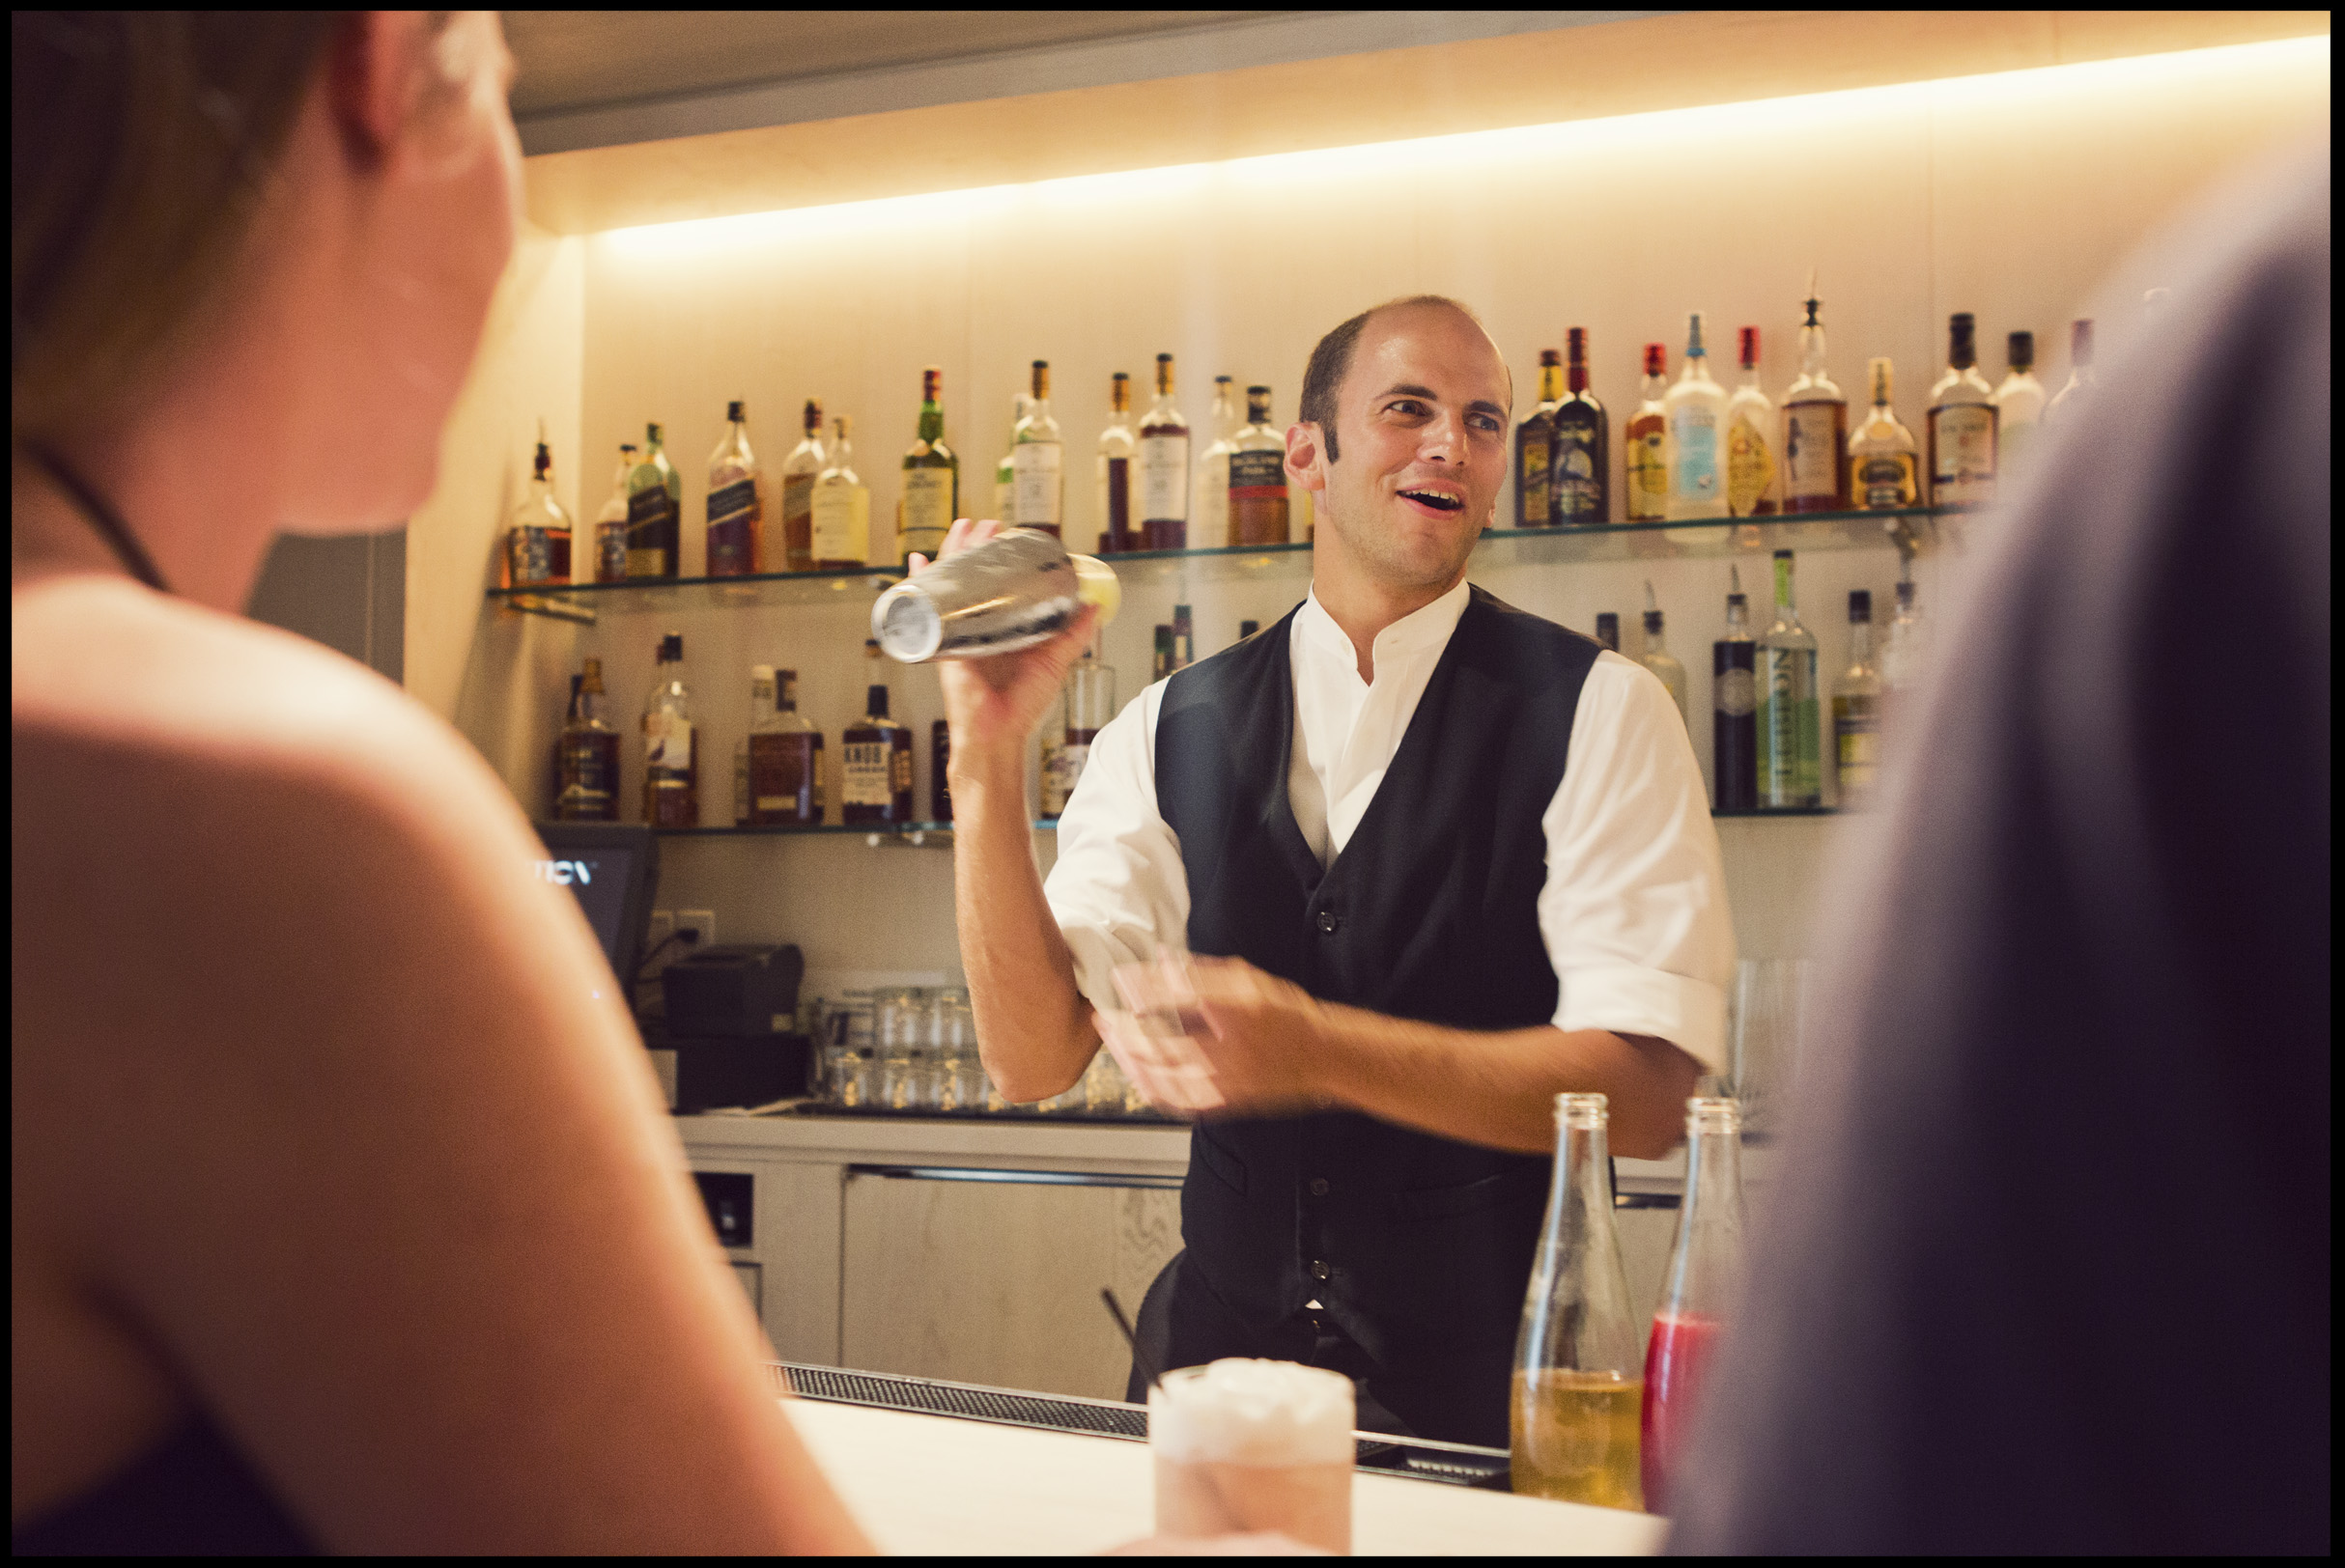 The Bartender at The Study serves drinks at the Modern Honolulu.